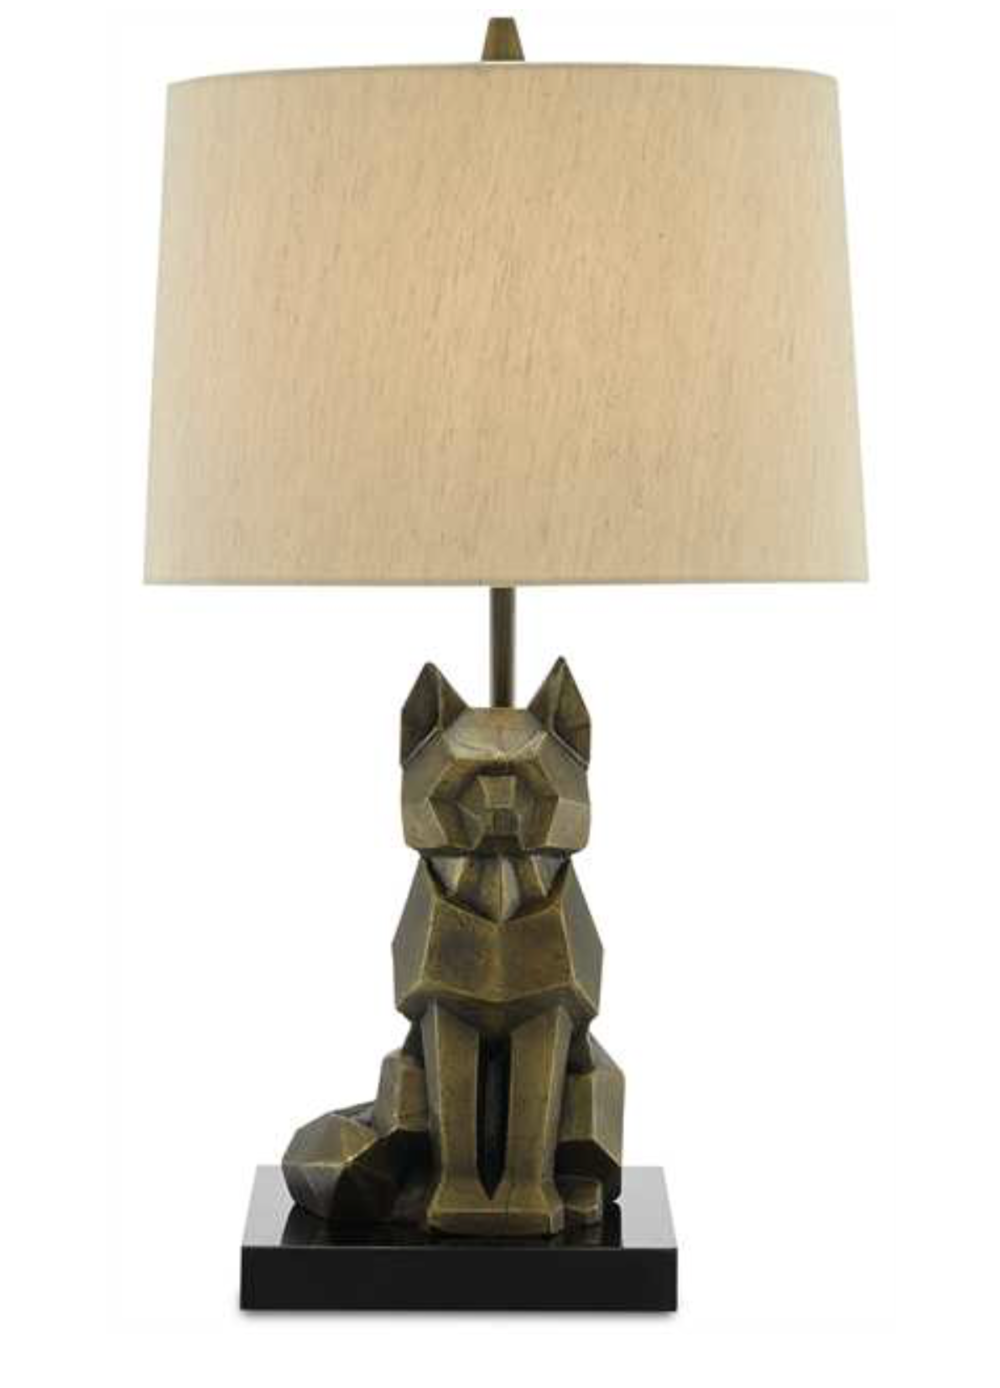 Cubist Wolf Table Lamp w/Poplin Shade  13x13x23h  CC0246